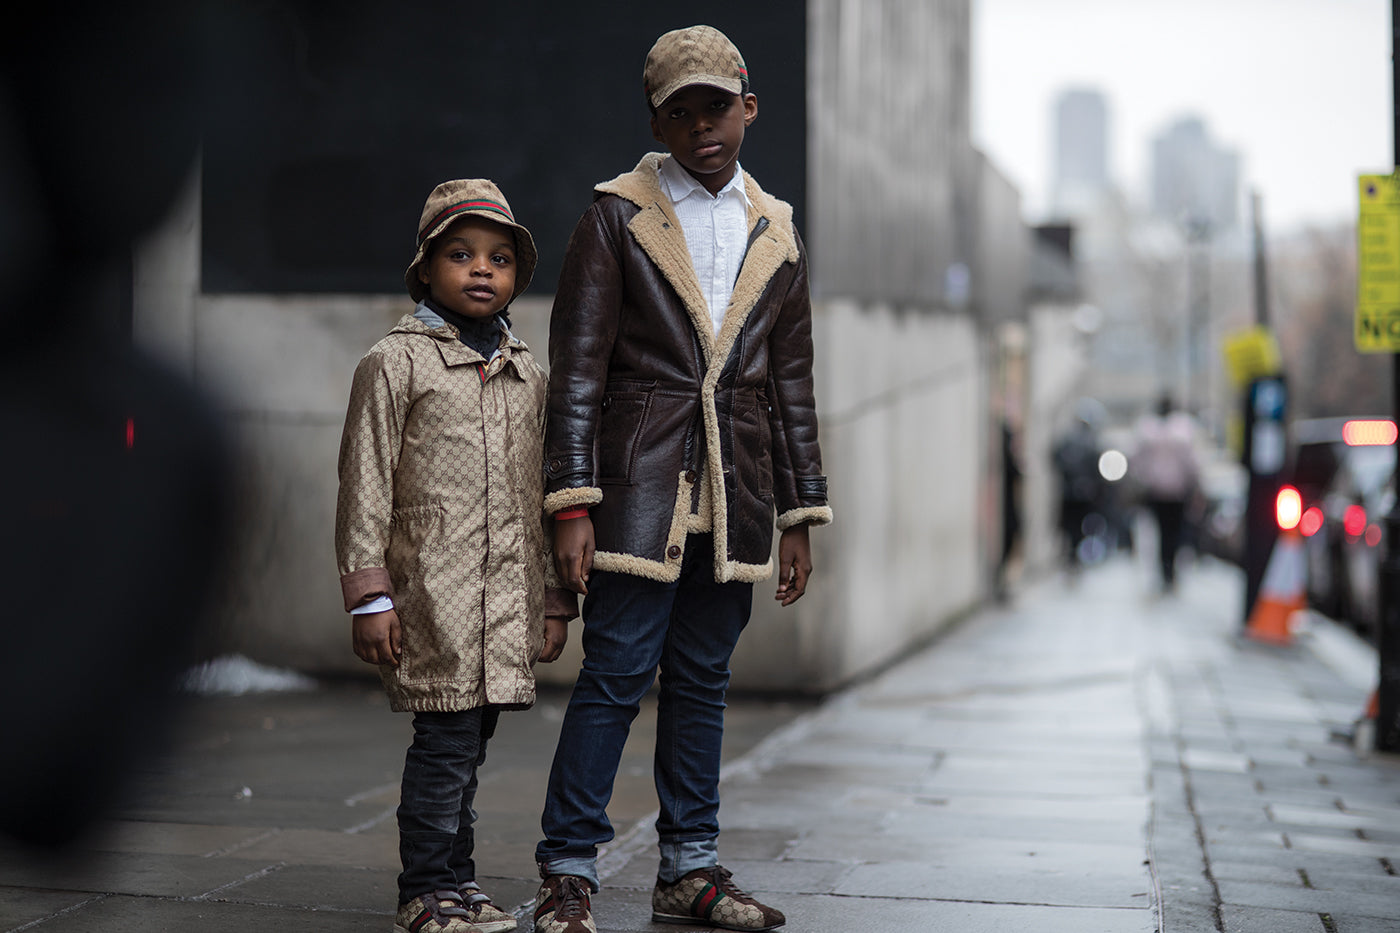 Two children standing on a sidewalk dressed in Gucci jackets in the streets of London. (Photo: Eva Losada)